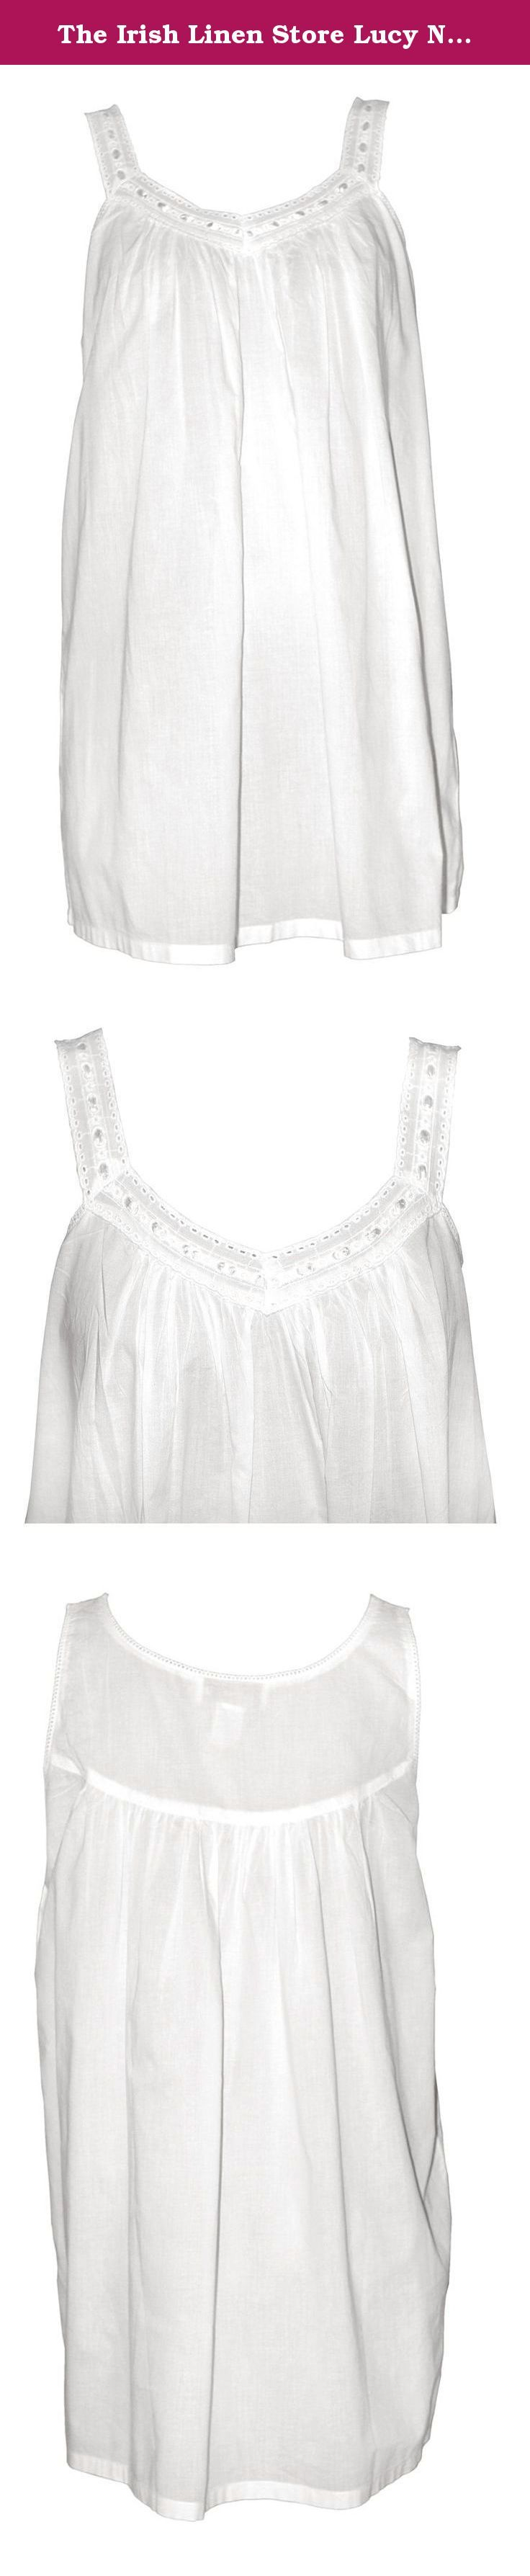 The Irish Linen Store Lucy Nightgown White Large/XL. Here is one of our 'Shorties' (as we like to call them). A cute, short length, baby doll-style Nightgown with an 'Embroidery Anglais' v-neckline, threaded ribbon detail and thin straps. Perfect if you are looking for something with a little less fabric to sleep in. M/L 10-12 Length 82cms, L/XL 12-14 Length 82cms.